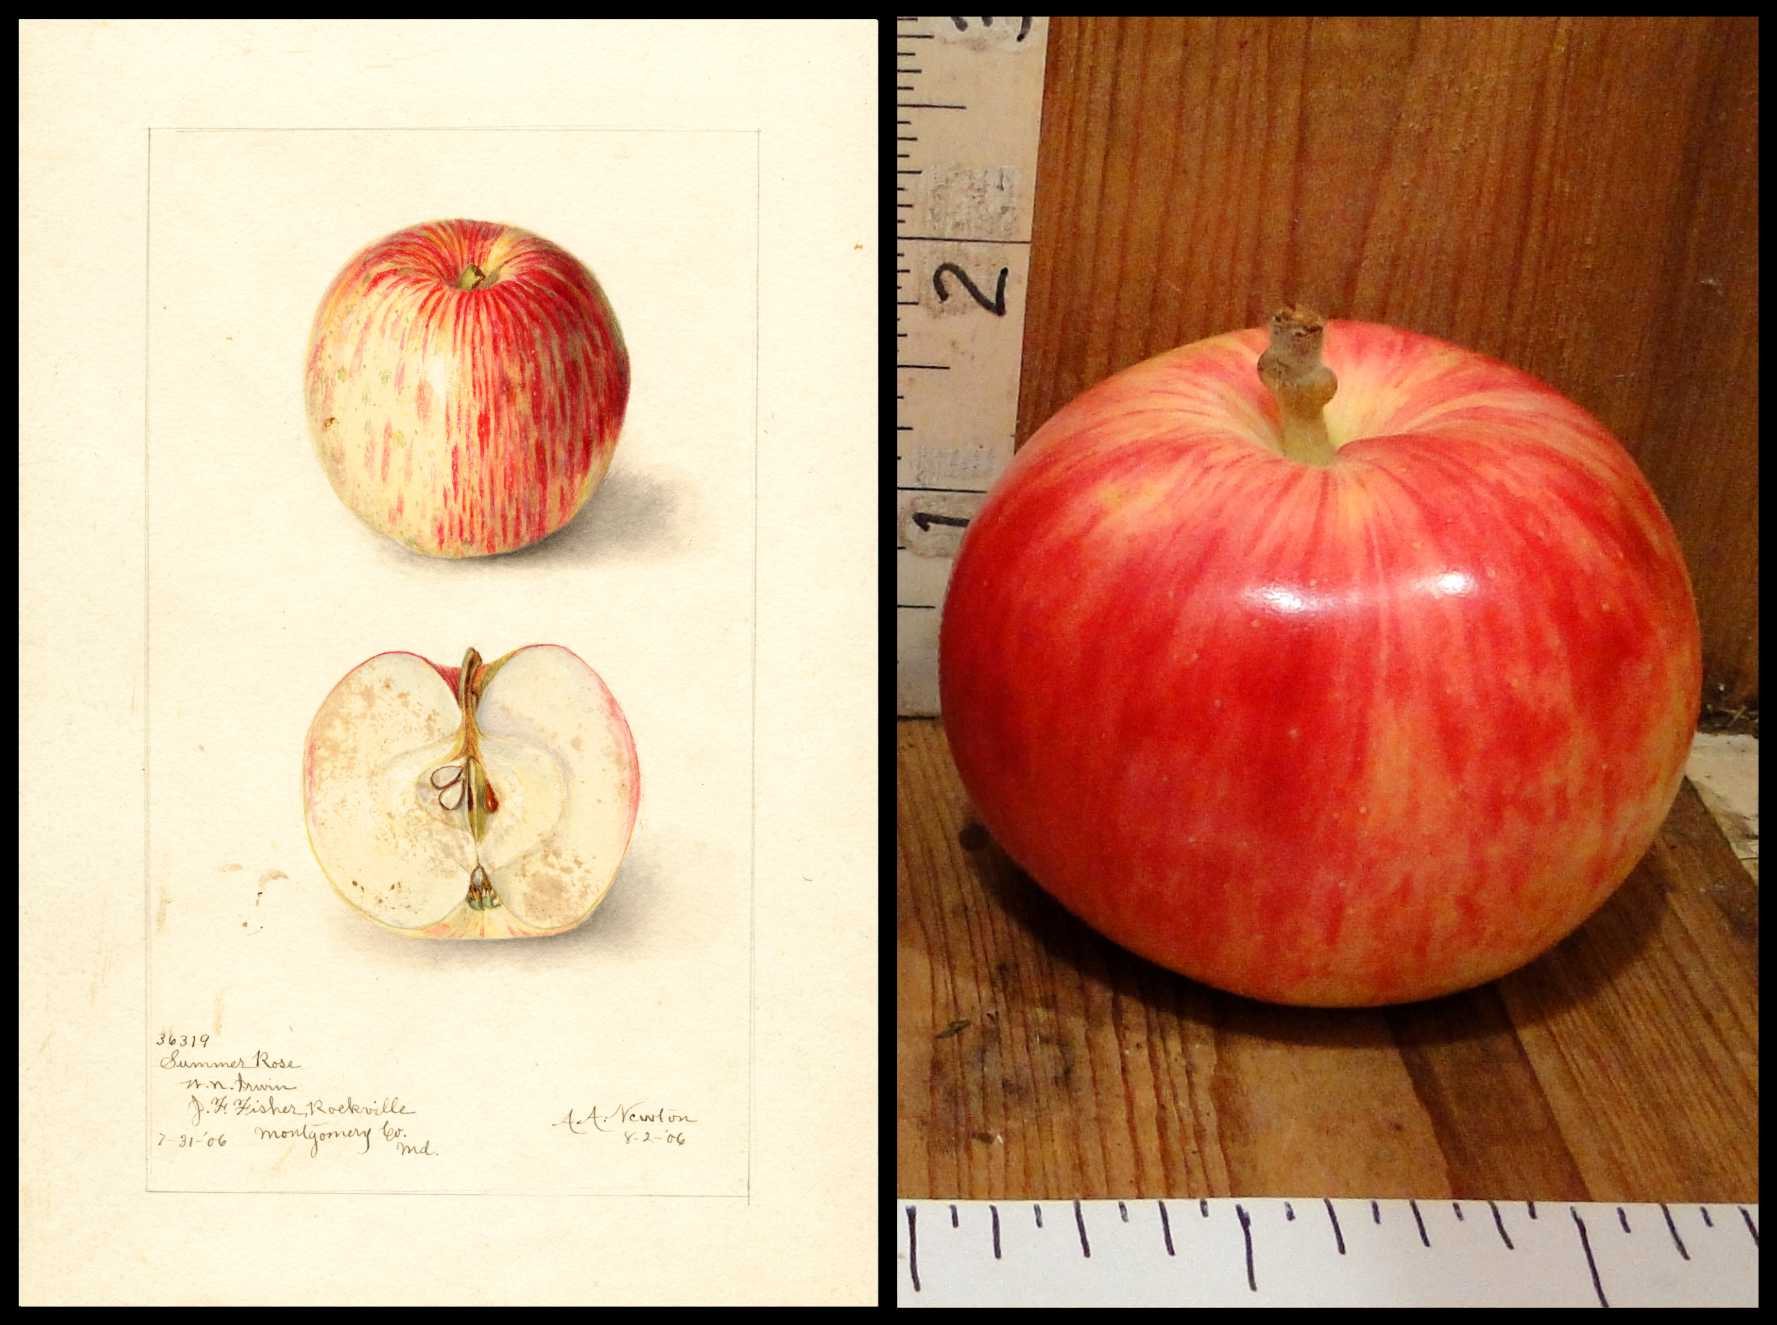 smooth apple striped with light yellow and light red